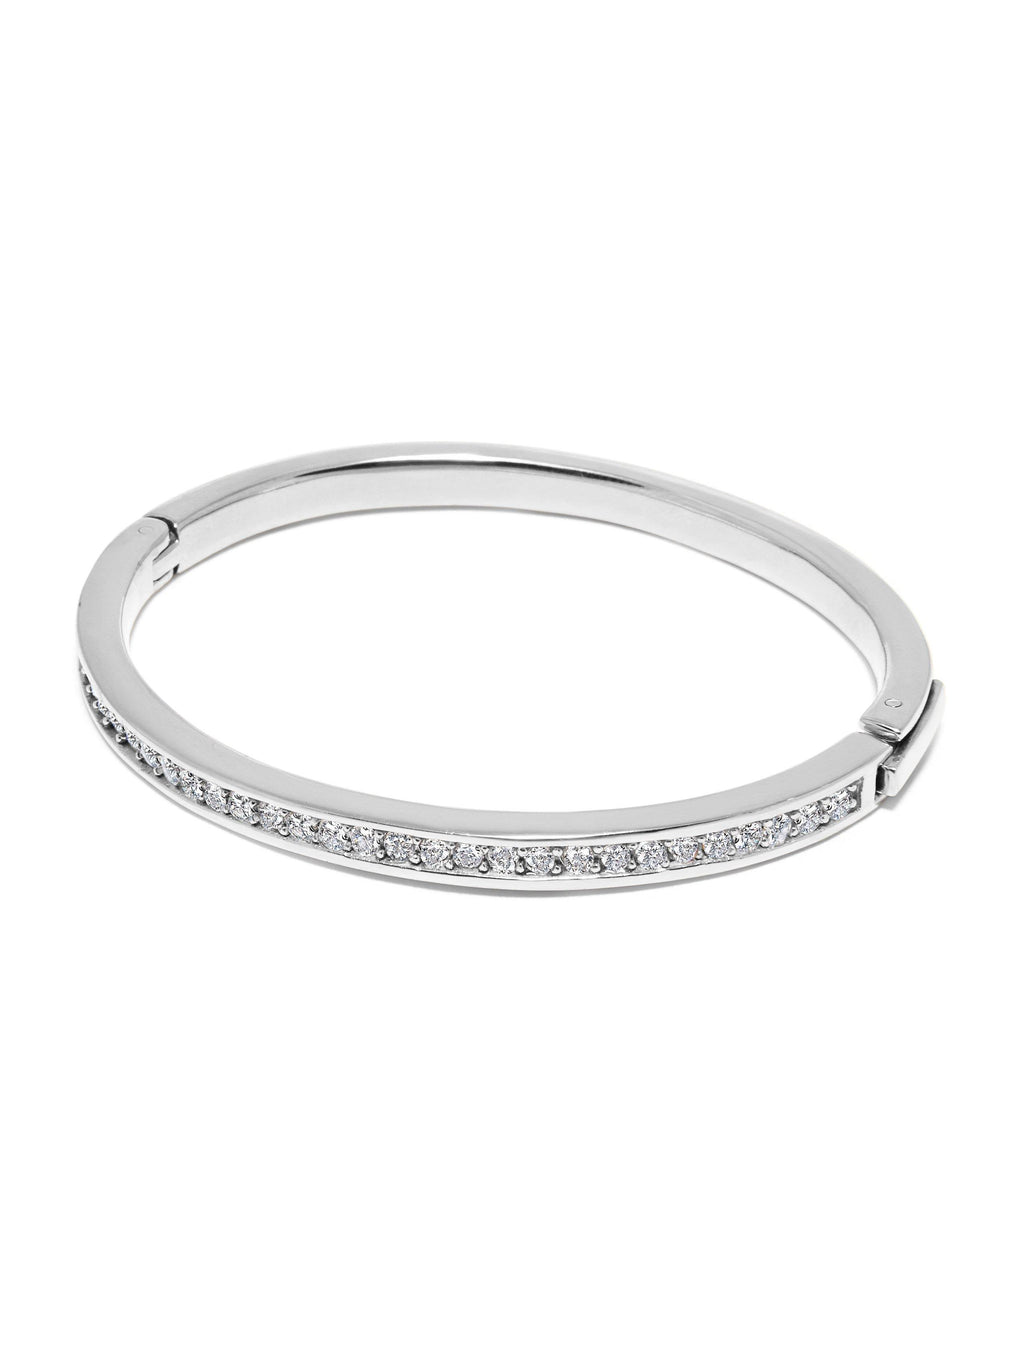 Skyfall Silver Simplicity CZ Bangle